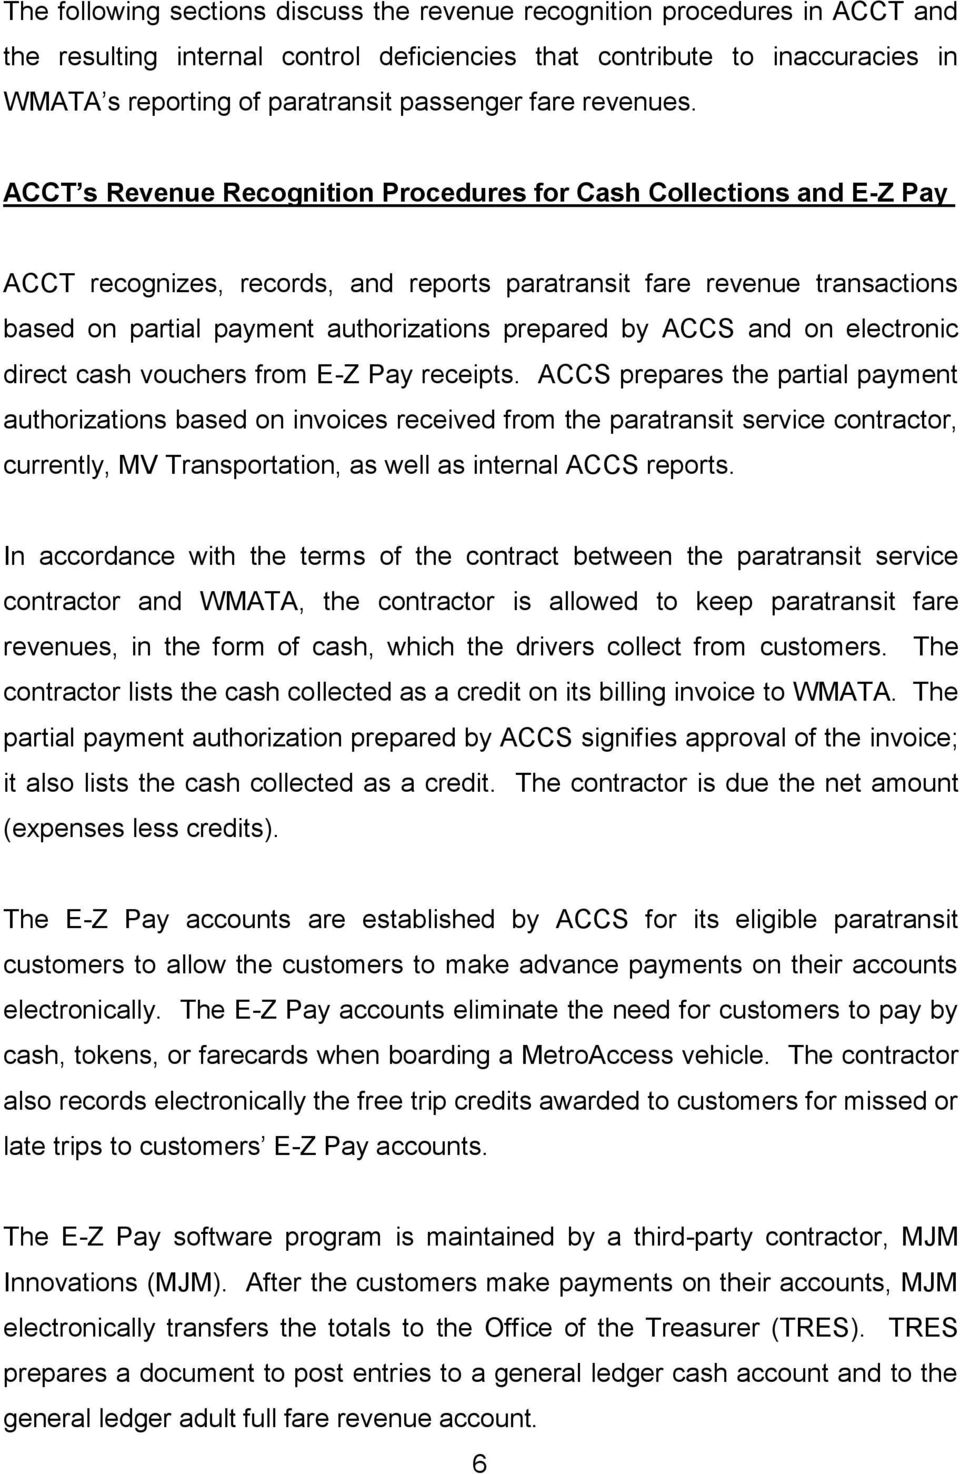 ACCT s Revenue Recognition Procedures for Cash Collections and E-Z Pay ACCT recognizes, records, and reports paratransit fare revenue transactions based on partial payment authorizations prepared by